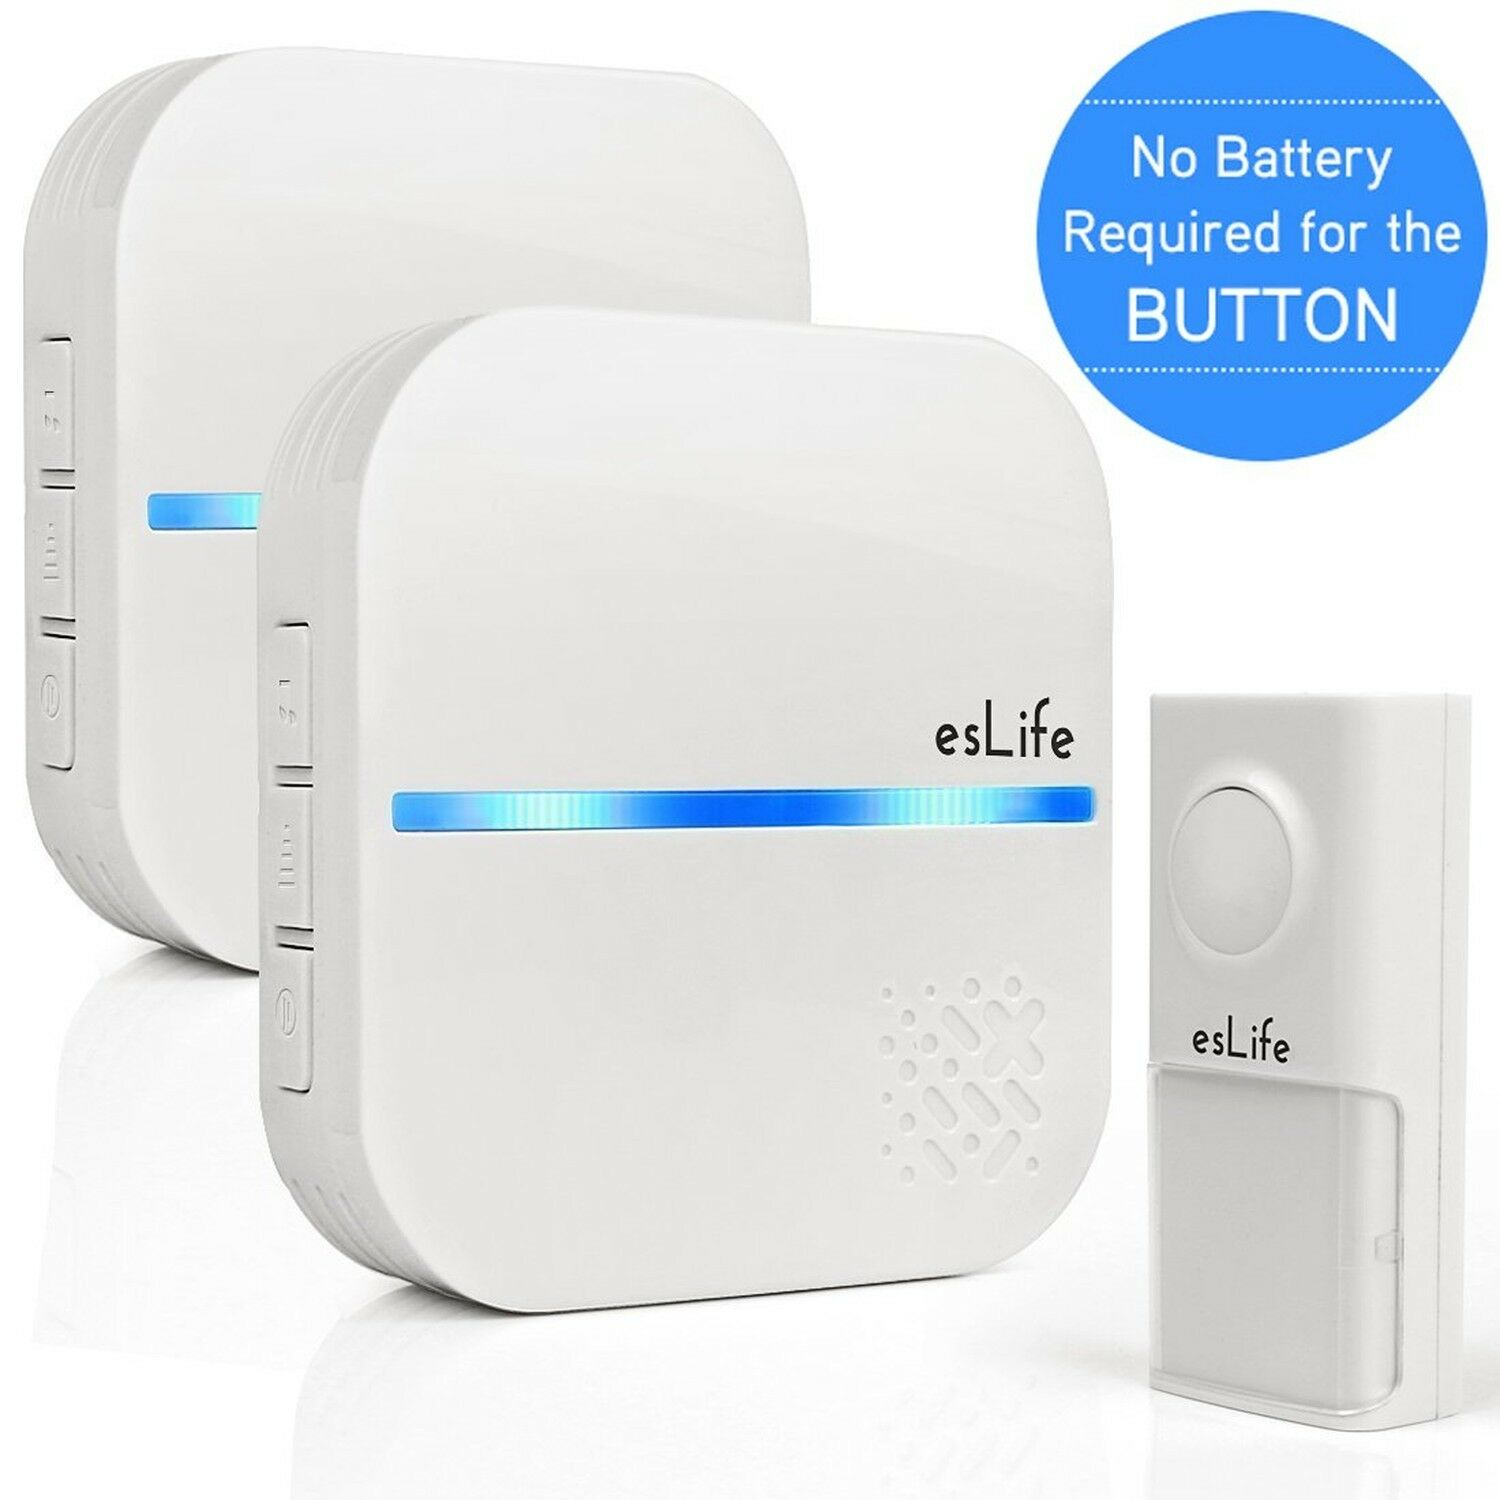 Led Unterbauleuchte Ip54 No Required Wireless Doorbell Waterproof Plug In Door Bell